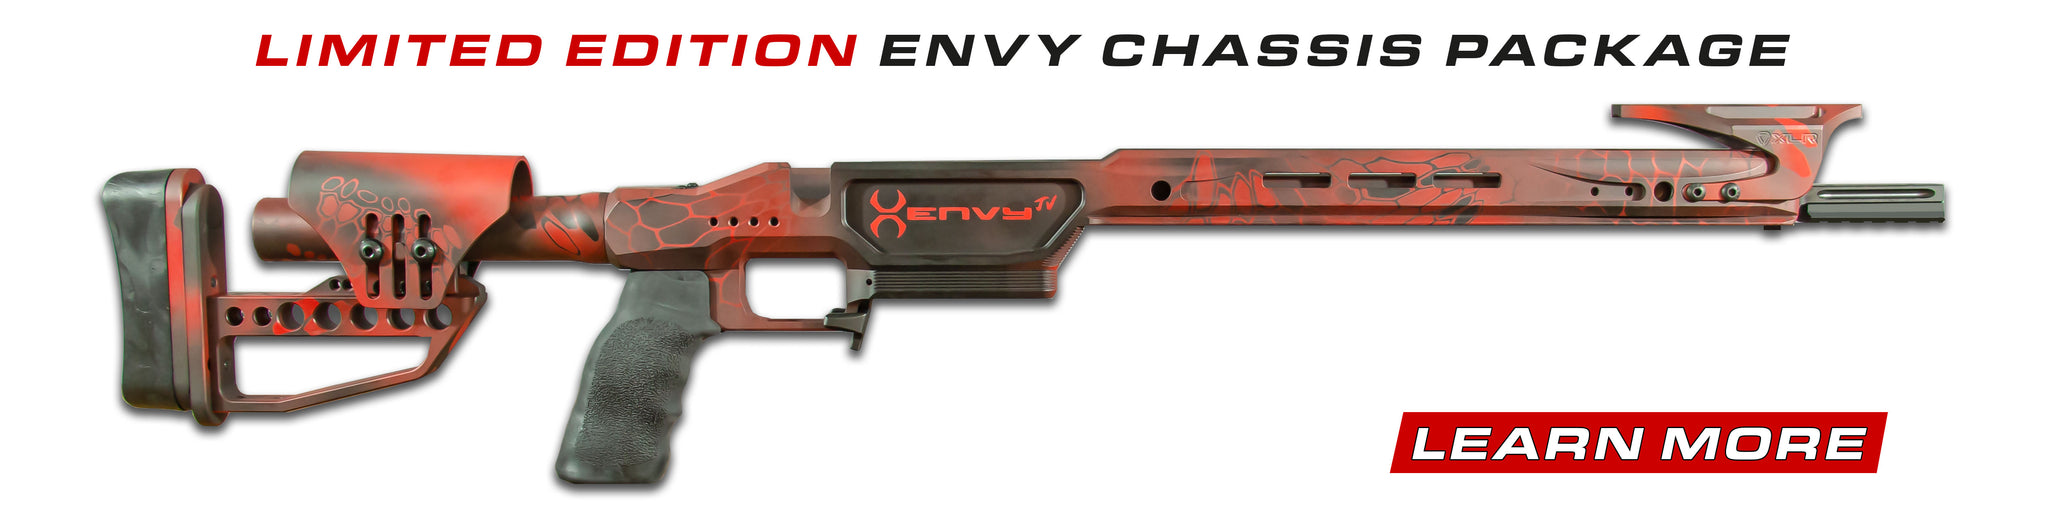 Limited Edition ENVY JV Heavy Fill Chassis Package